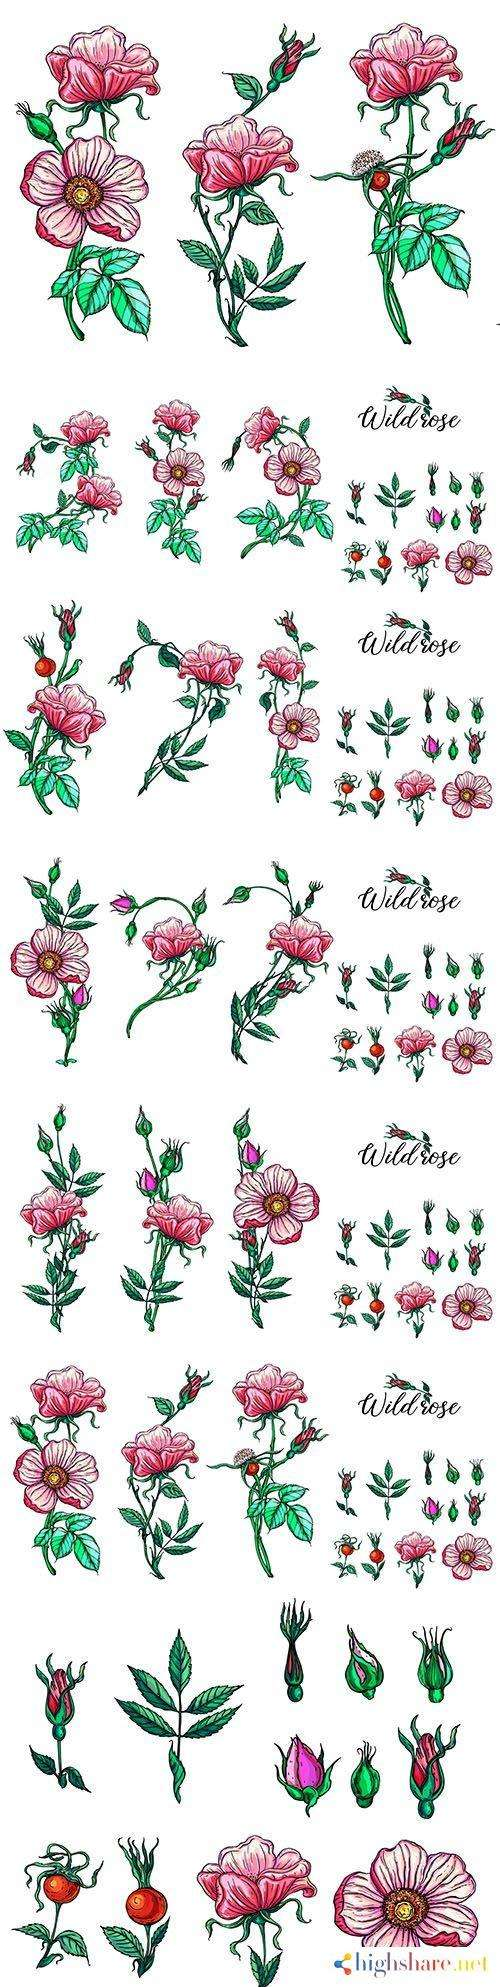 pink roses and buds set floral compositions design 5f41e6e2ca63f - Pink roses and buds set floral compositions design